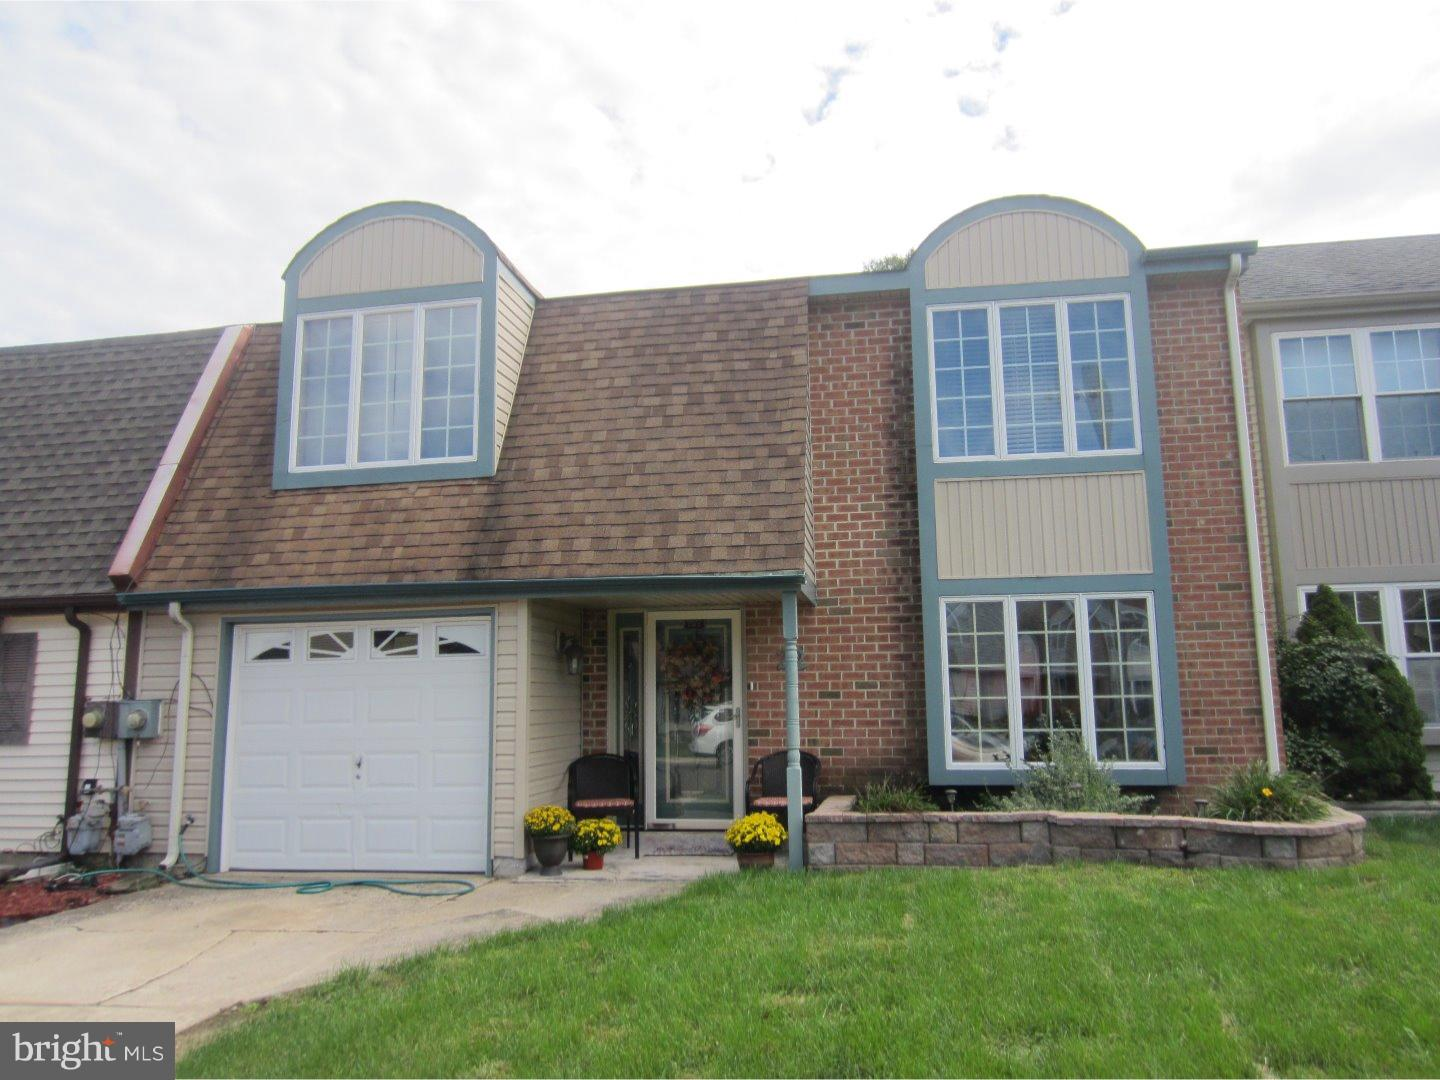 Single Family Home for Sale at 22 CARDINAL Drive Clementon, New Jersey 08021 United StatesMunicipality: Clementon